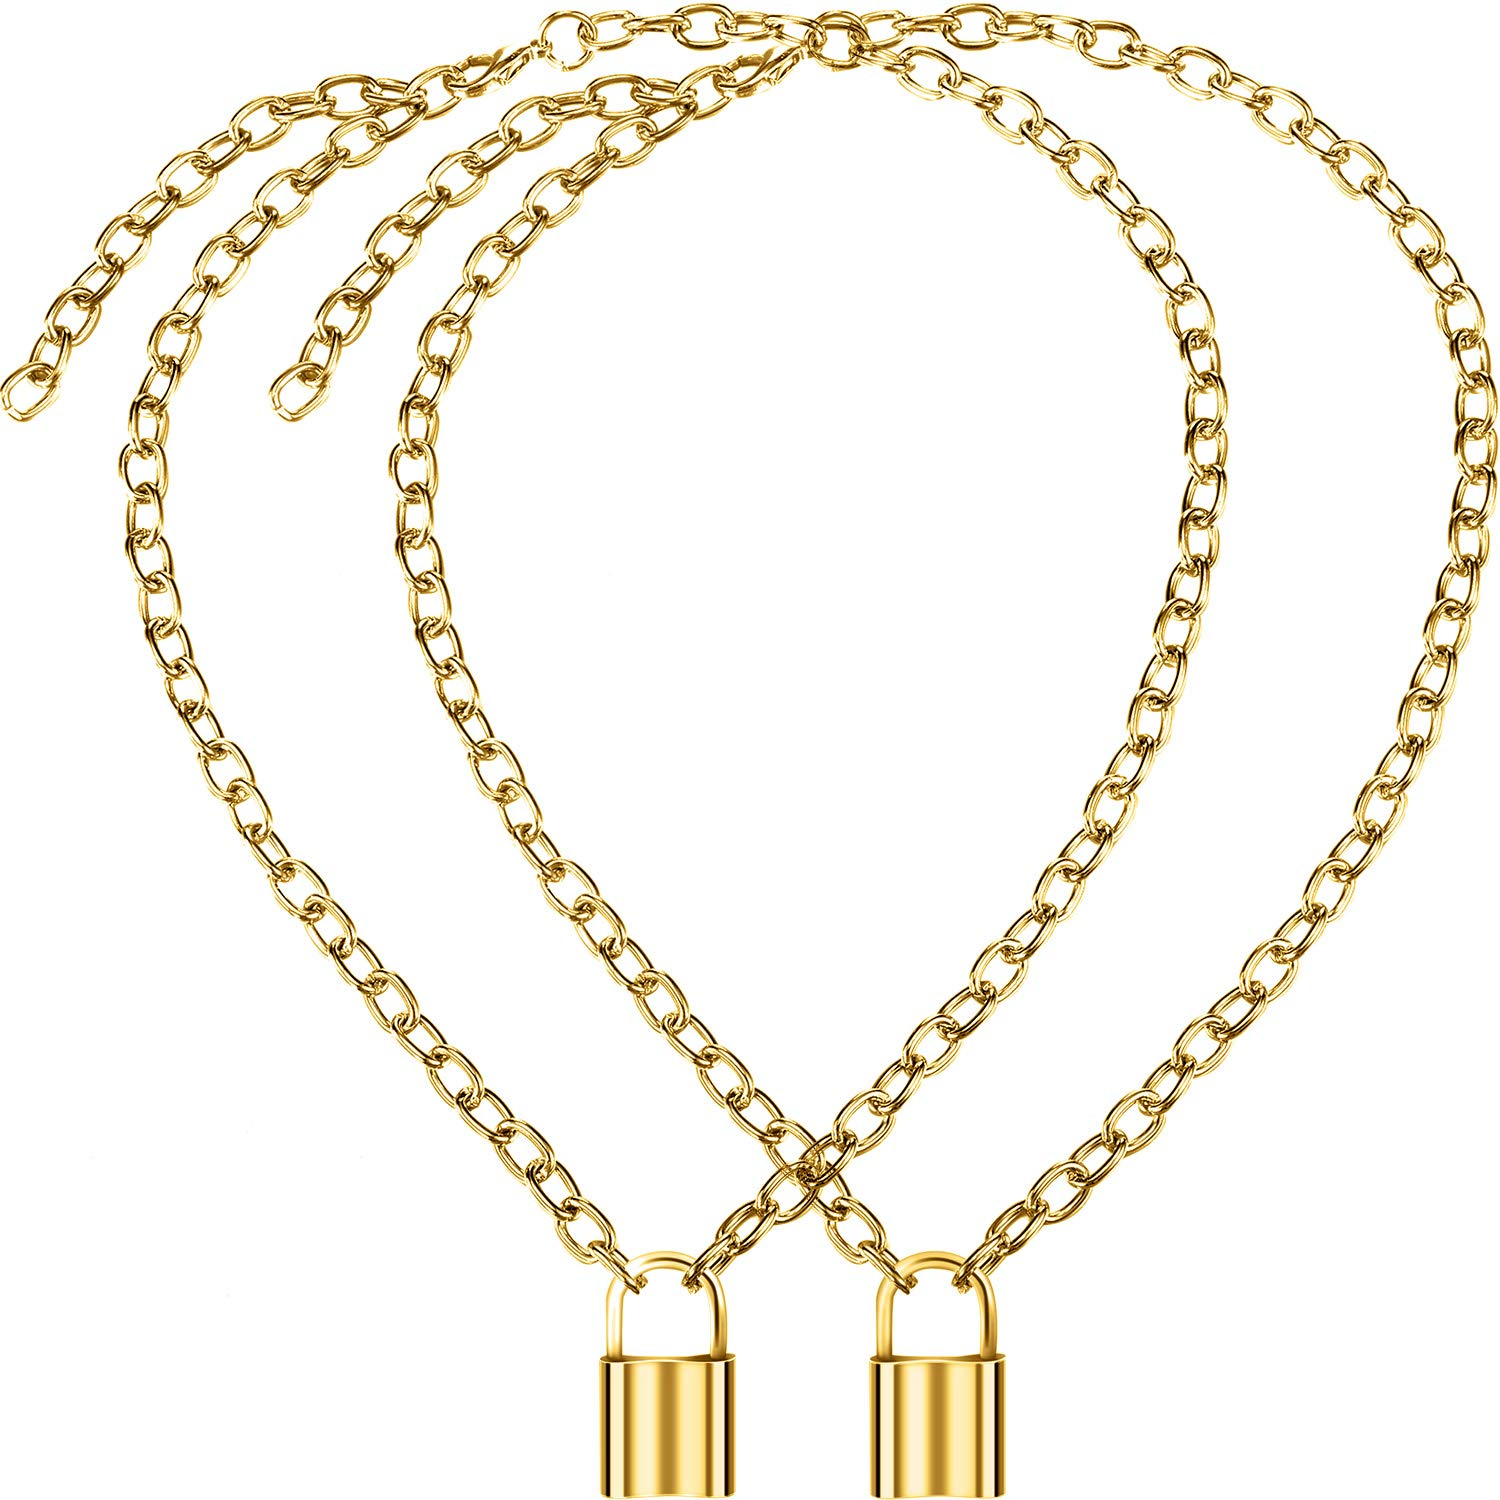 756f603558f Yaomiao 2 Pack Y Lock Pendant Necklace Simple Chain Necklace Lock Chain  Jewelry Long Multilayer Chain Women Girls Gift